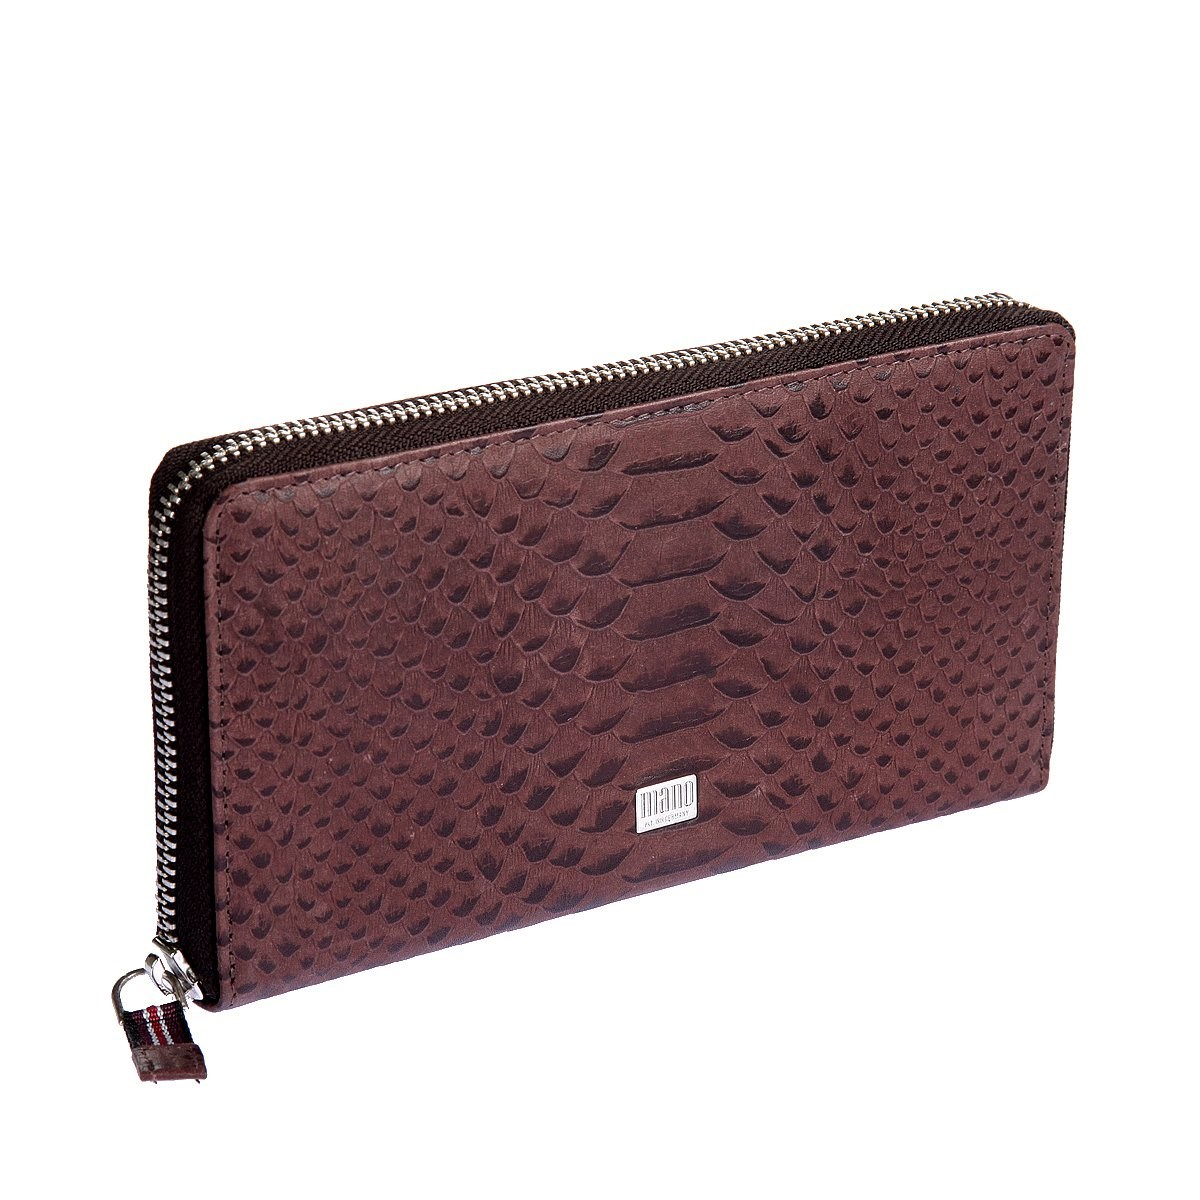 Coin Purse Mano 20151 croco Brown портмоне mano business 19008 19008 brown